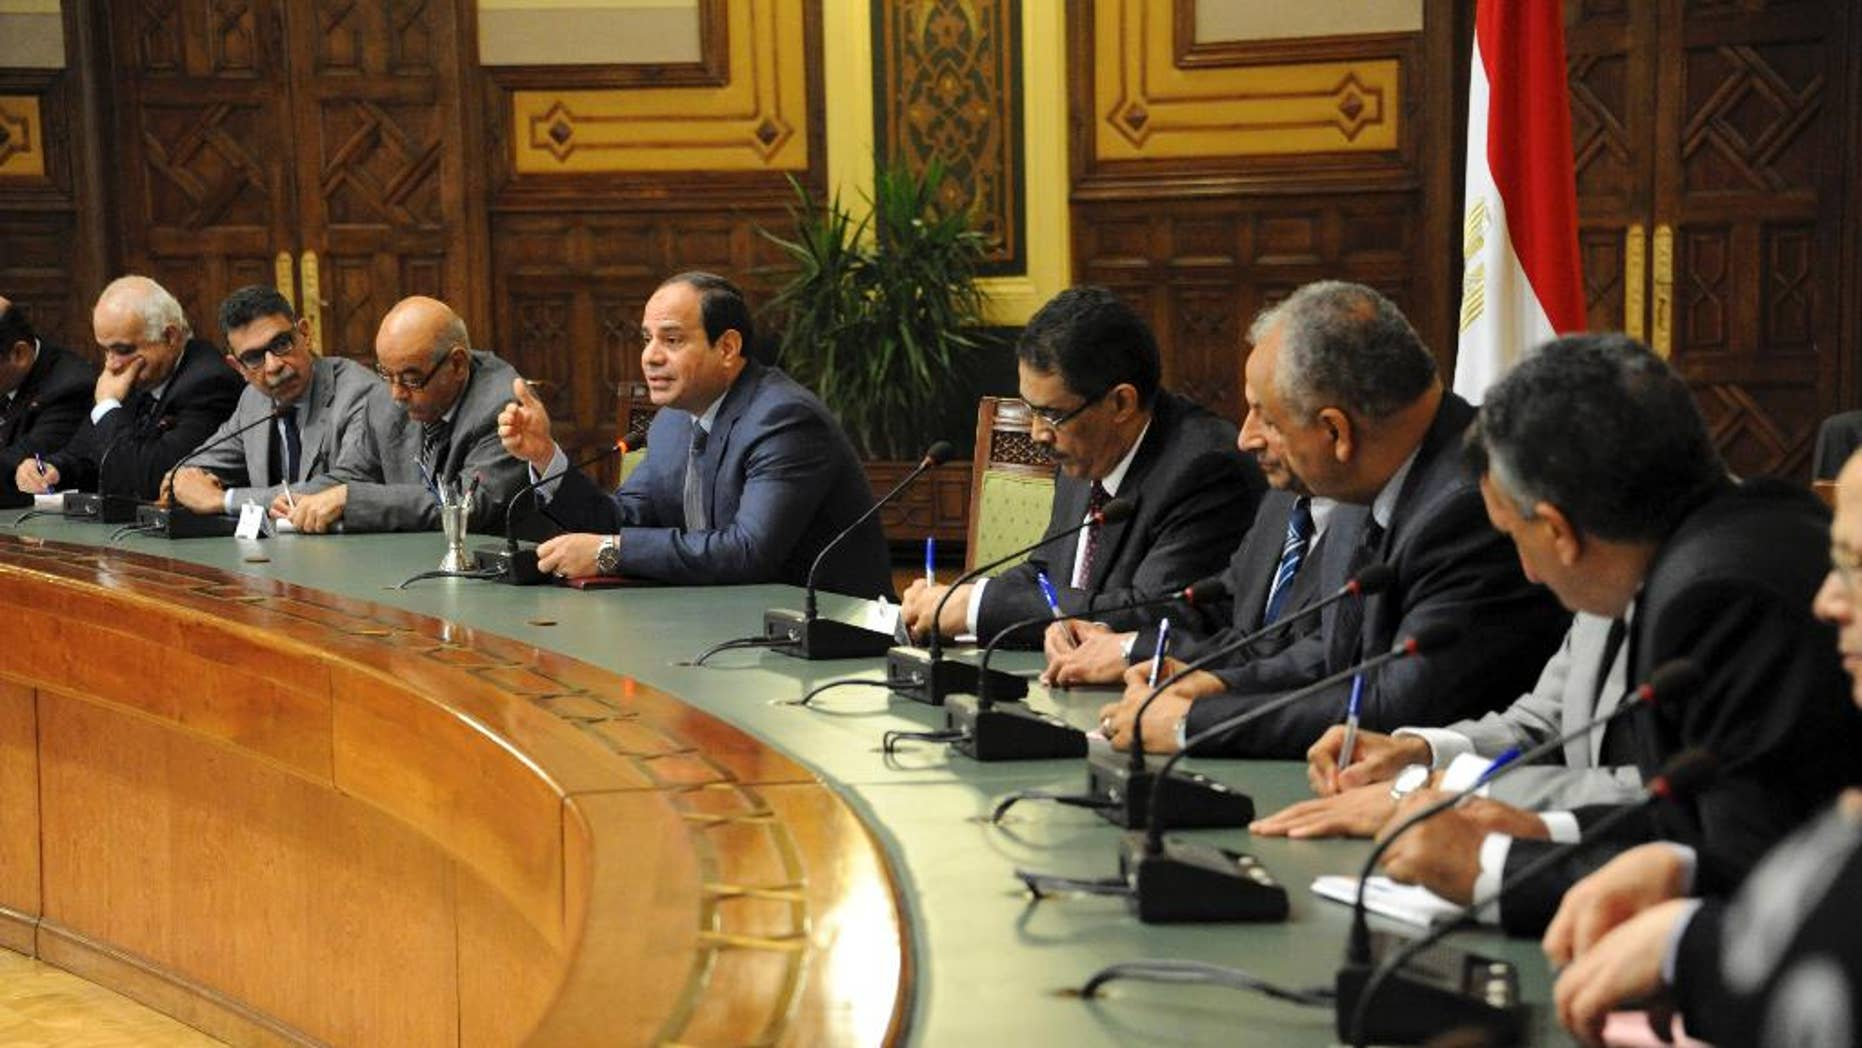 In this photo provided by Egypt's state news agency MENA, Egyptian President Abdel-Fattah el-Sissi, center, meets with editors of Egyptian newspapers and media in the presidential palace, in Cairo Egypt, Sunday, Aug. 24, 2014. El-Sissi denied Sunday any military involvement in neighboring Libya, a day after Islamist militias accused Cairo of bombing their posts in Tripoli, Egypt's state news agency reported. El-Sissi said Egypt is in consultation with Libya's neighbors to find a political solution to the violent power struggle between rival groups. (AP Photo/MENA)